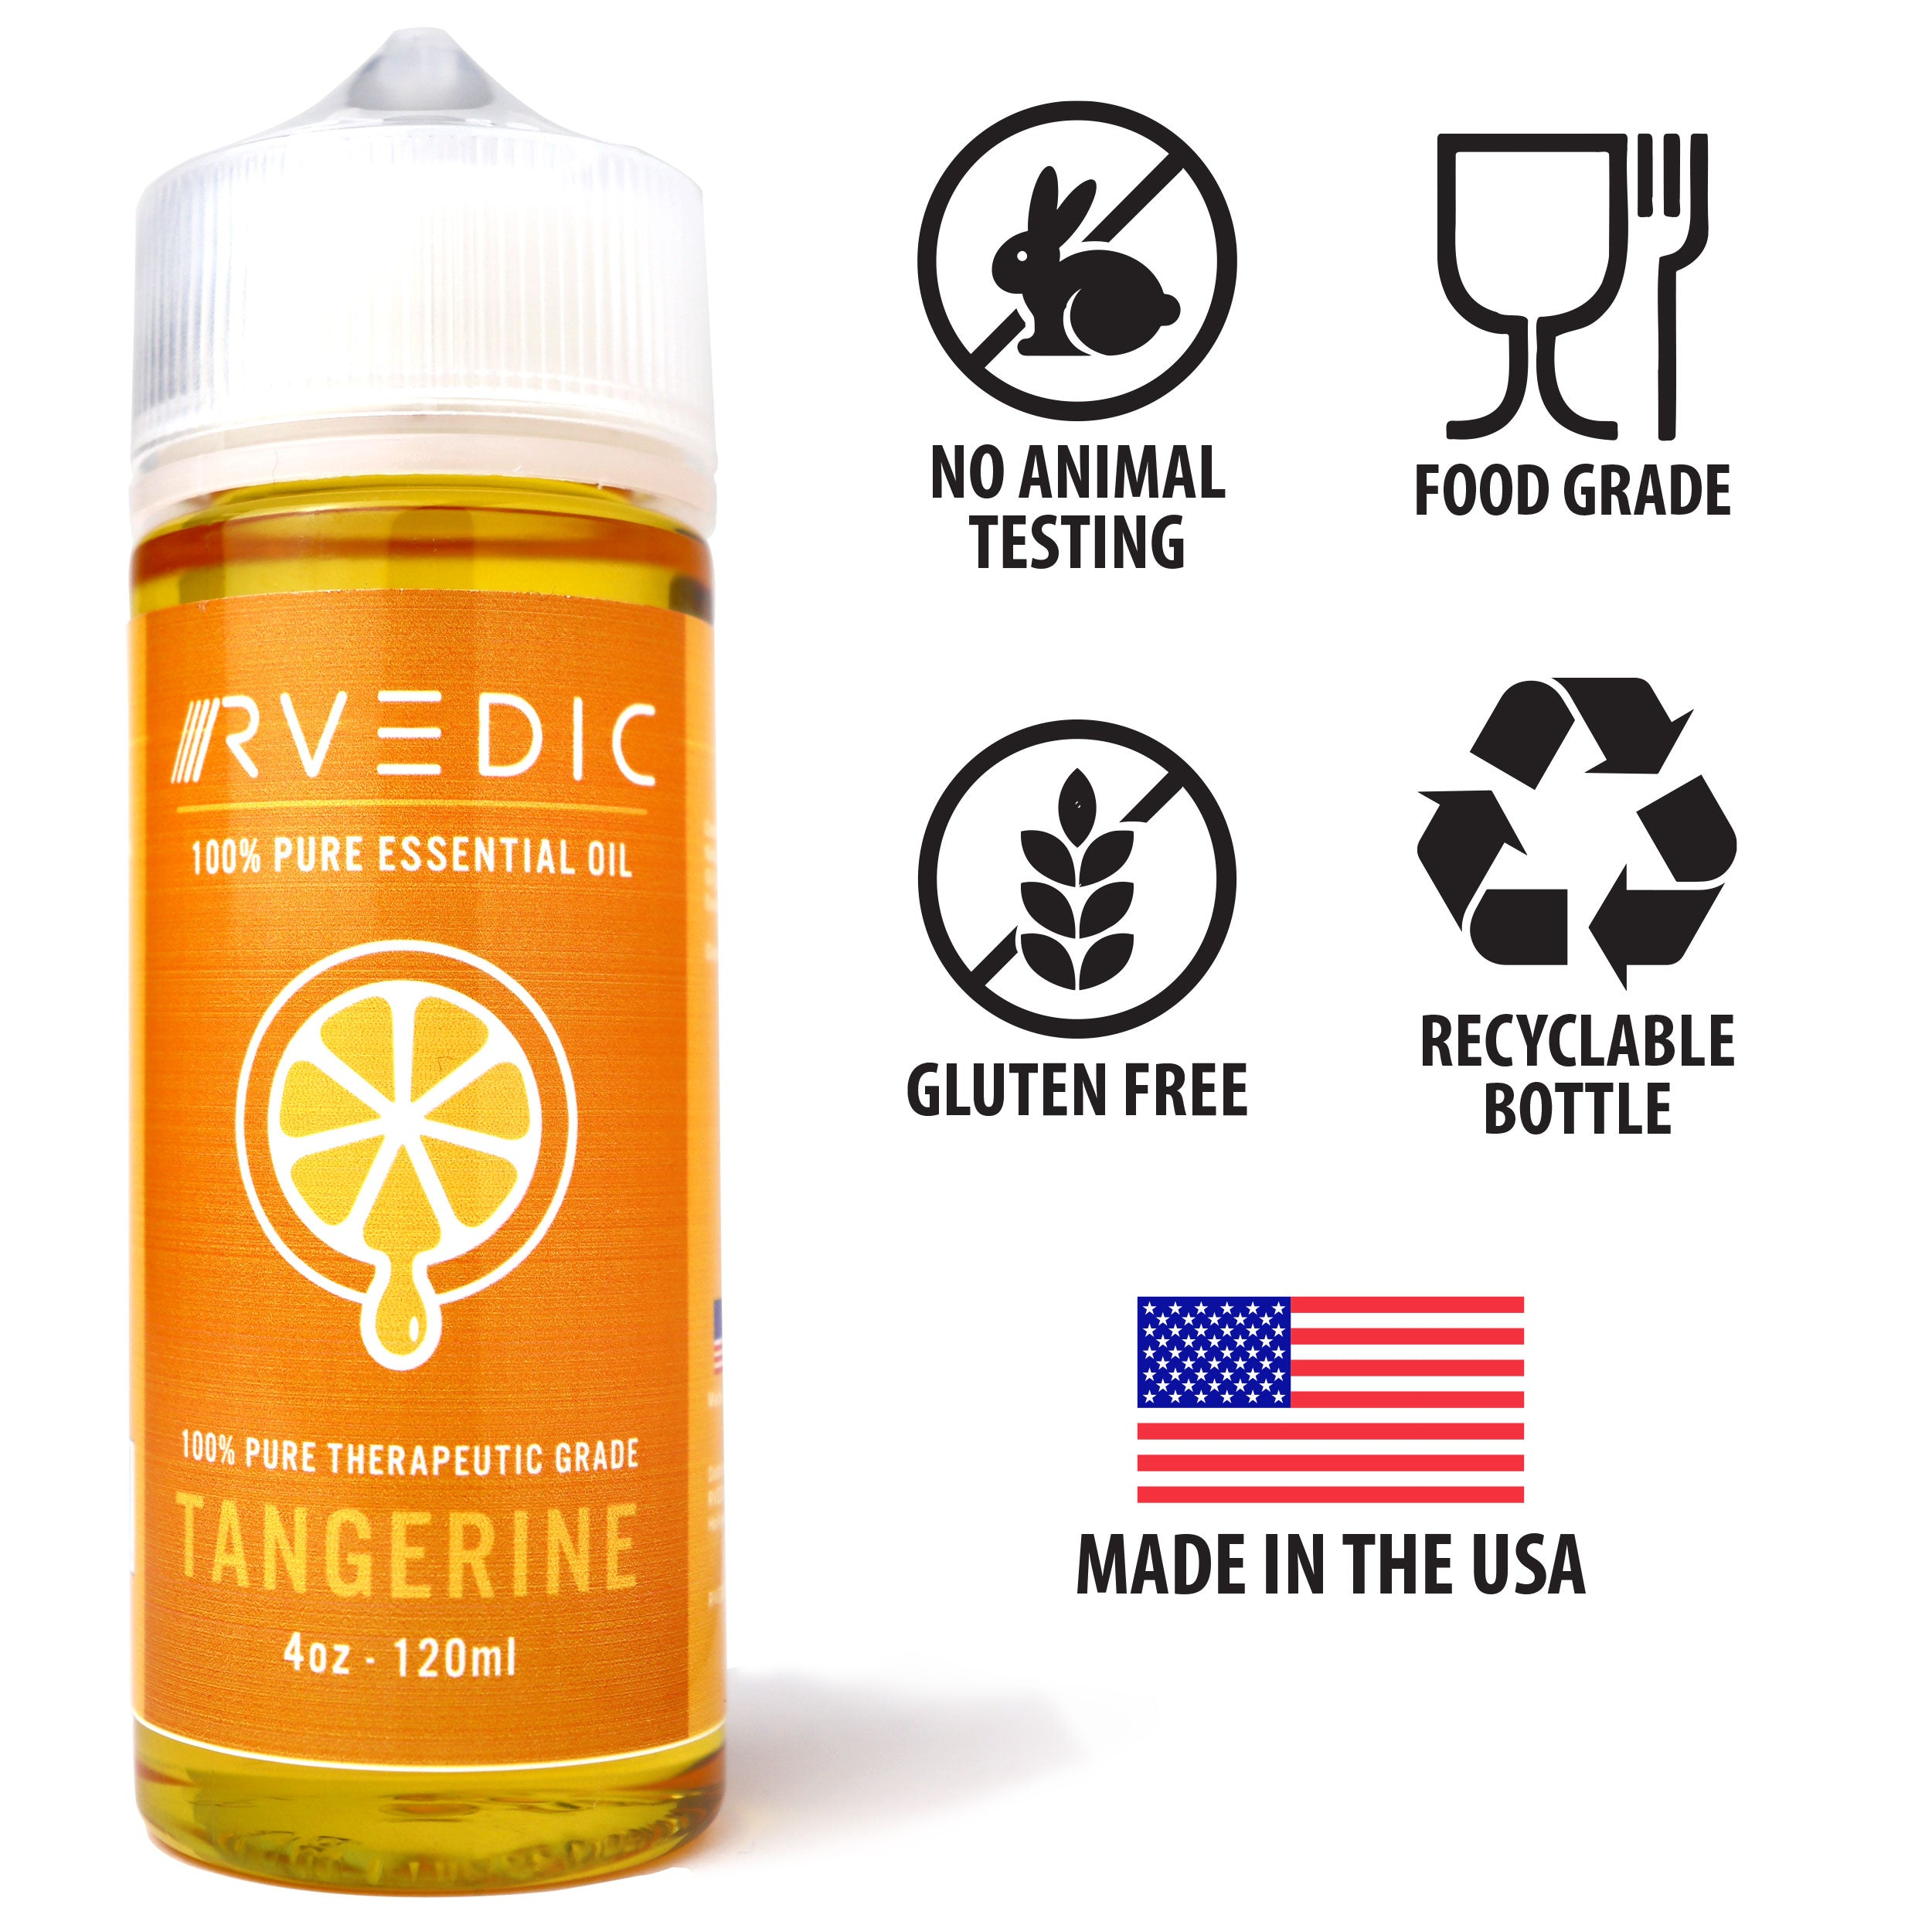 RVEDIC 100% Pure Tangerine Essential Oil - 4oz (120mL)